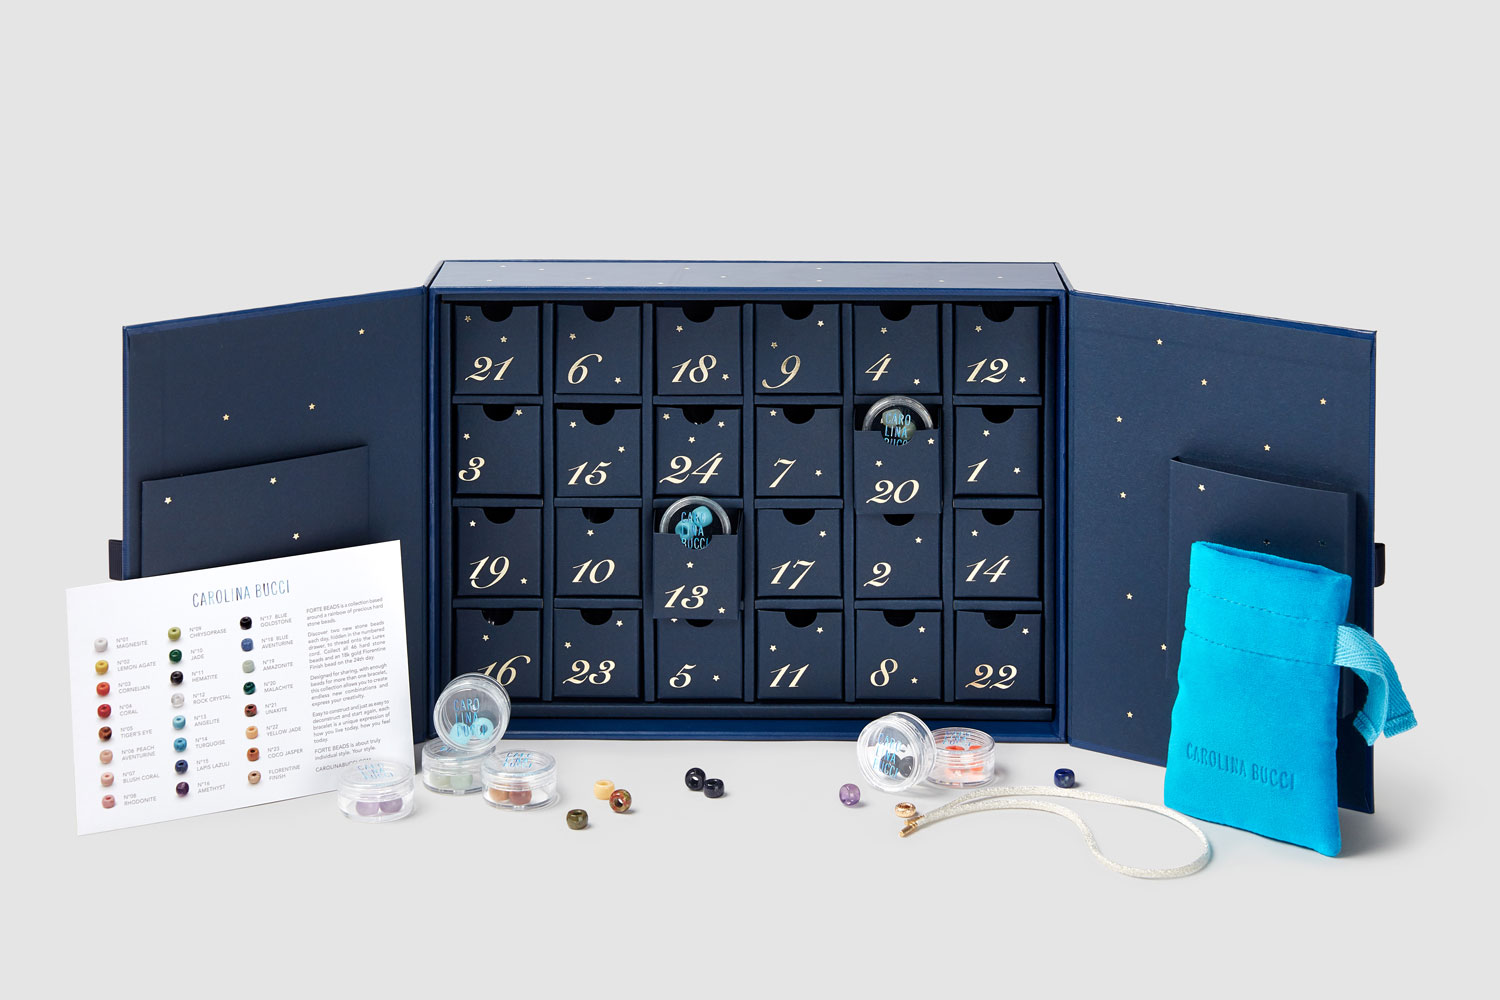 Progress Packaging Carolina Bucci Advent Calendar Bespoke Luxury Seasonal Packaging Drawer Boxes Advent Calendar Jewellery retail Special Limited Edition 01